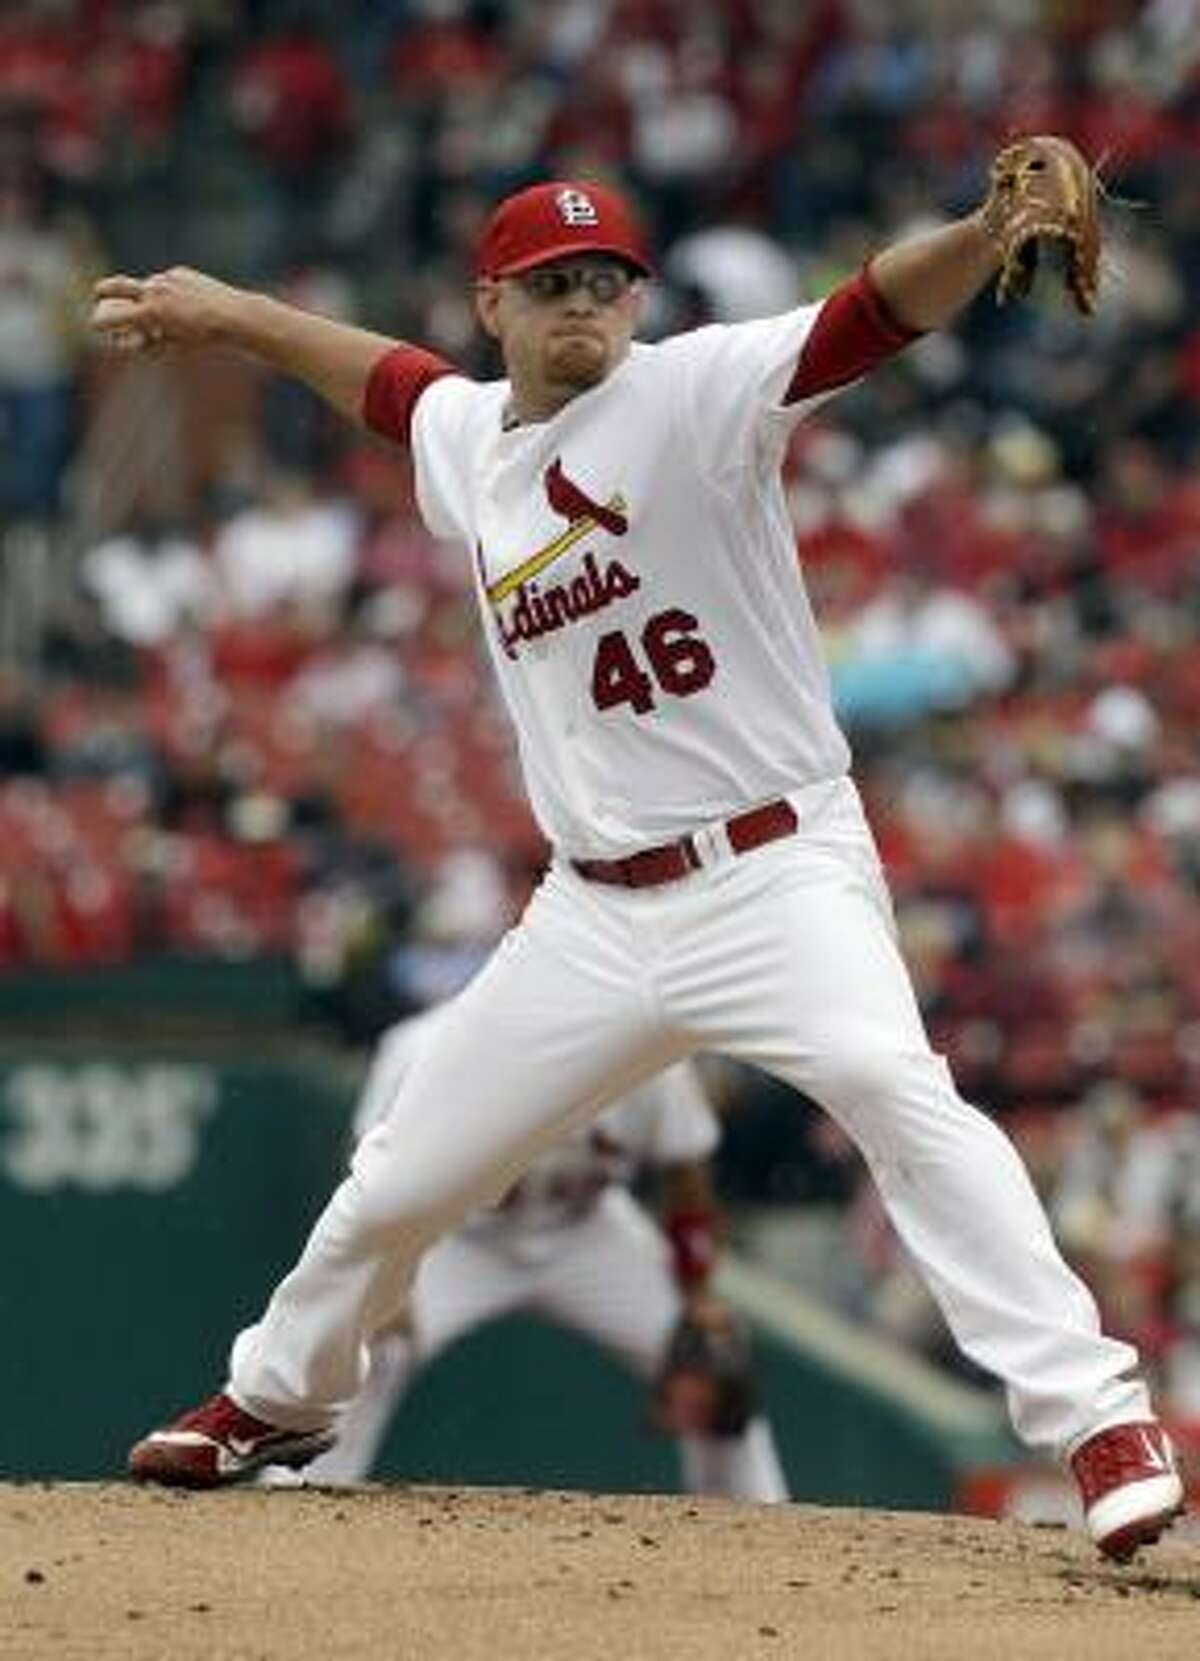 Cardinals starter Kyle McClellan improved to 6-1 after holding the Astros to two runs in eight innings.